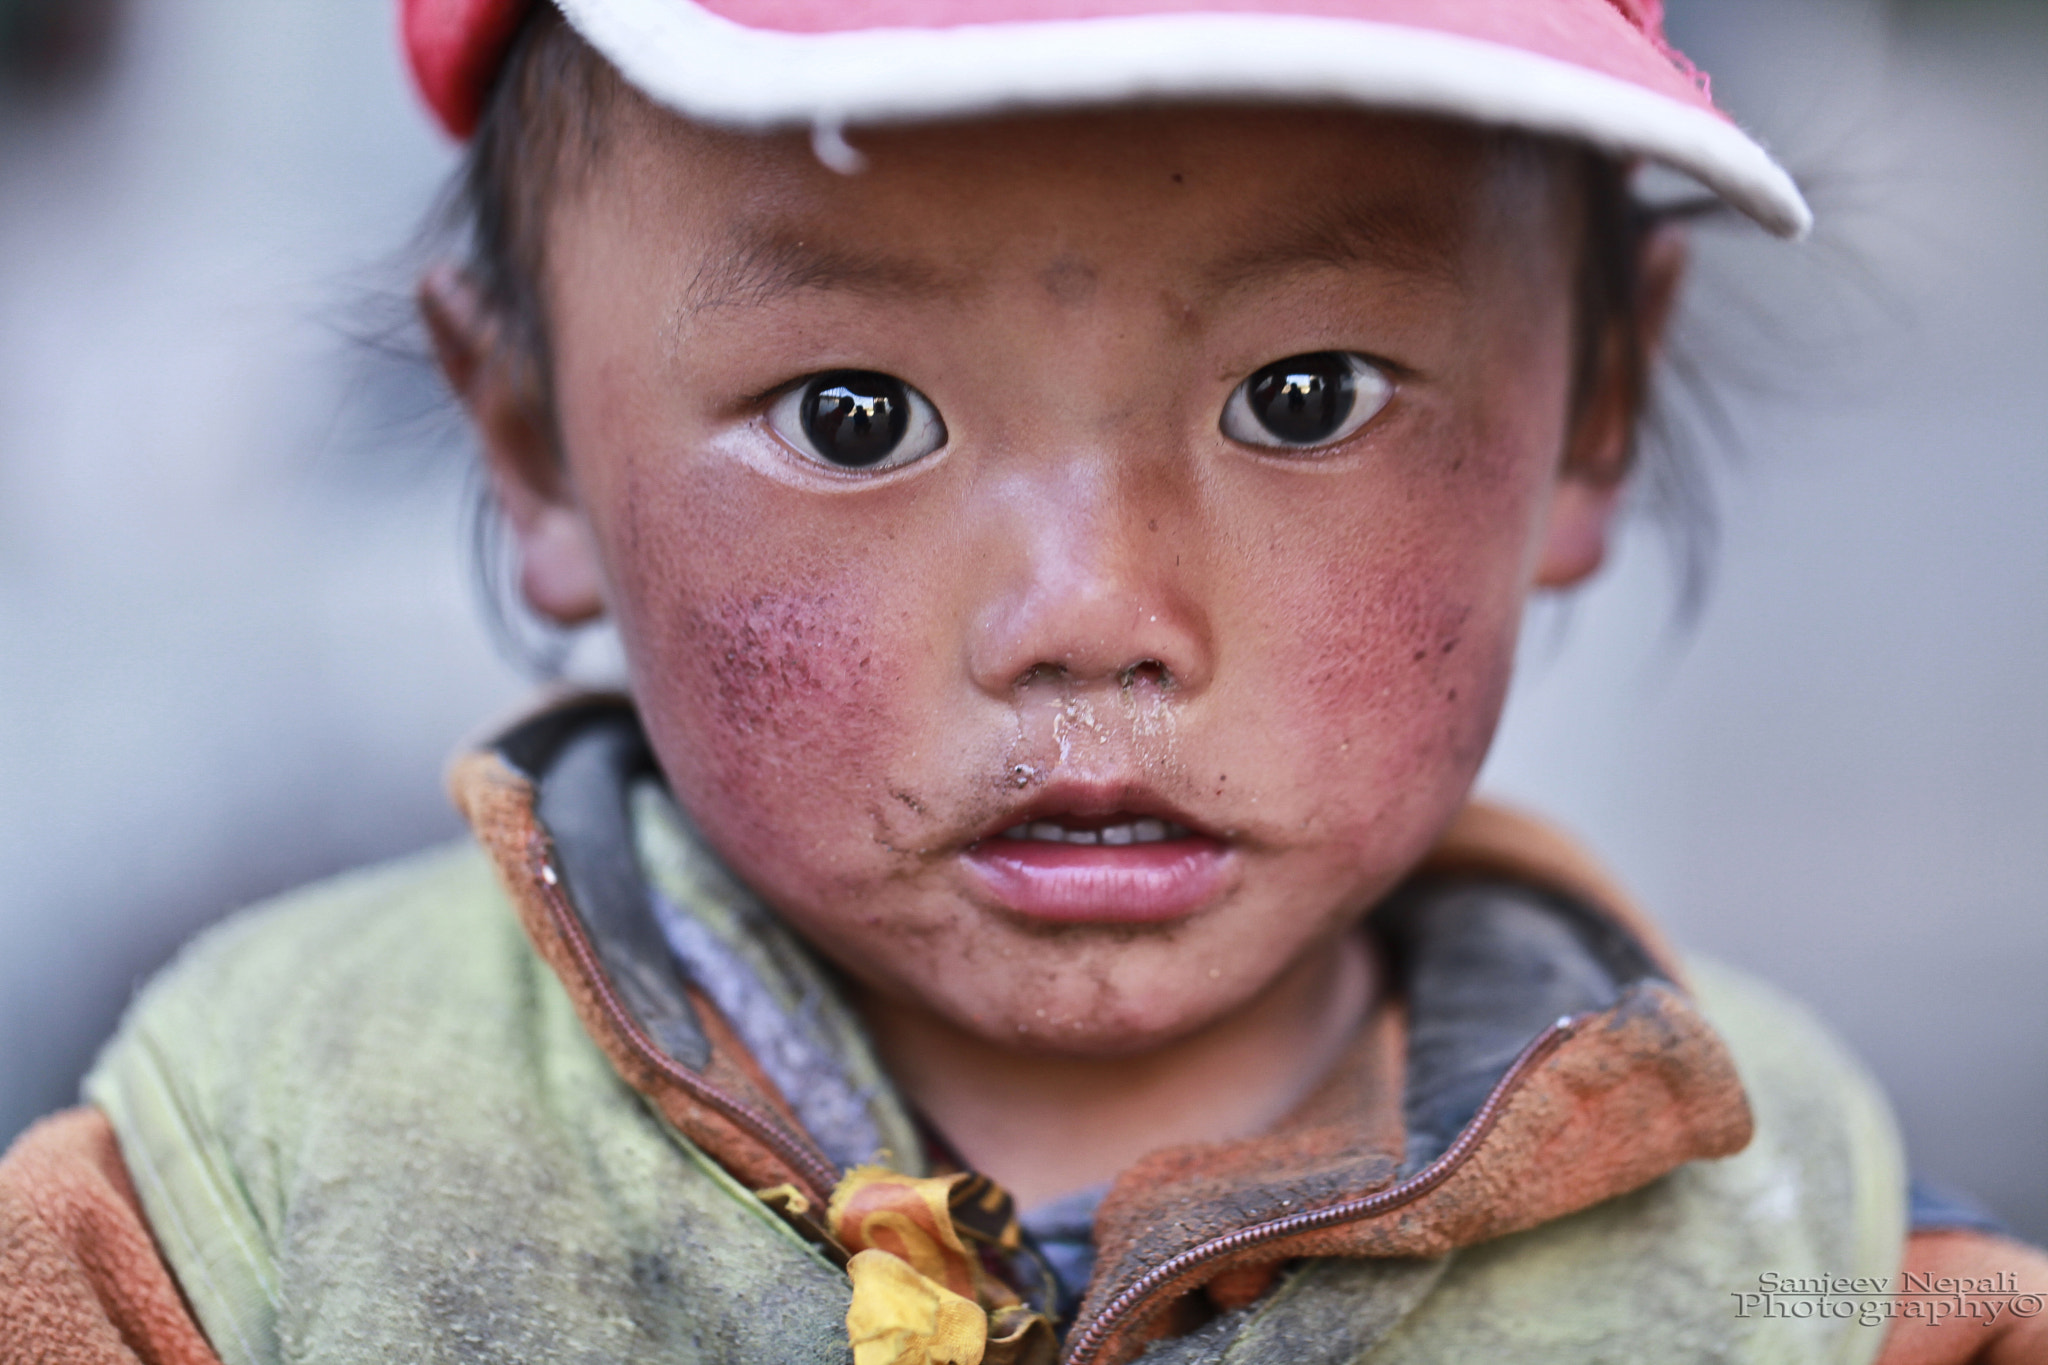 Photograph Innocence  by Sanjeev Nepali  on 500px